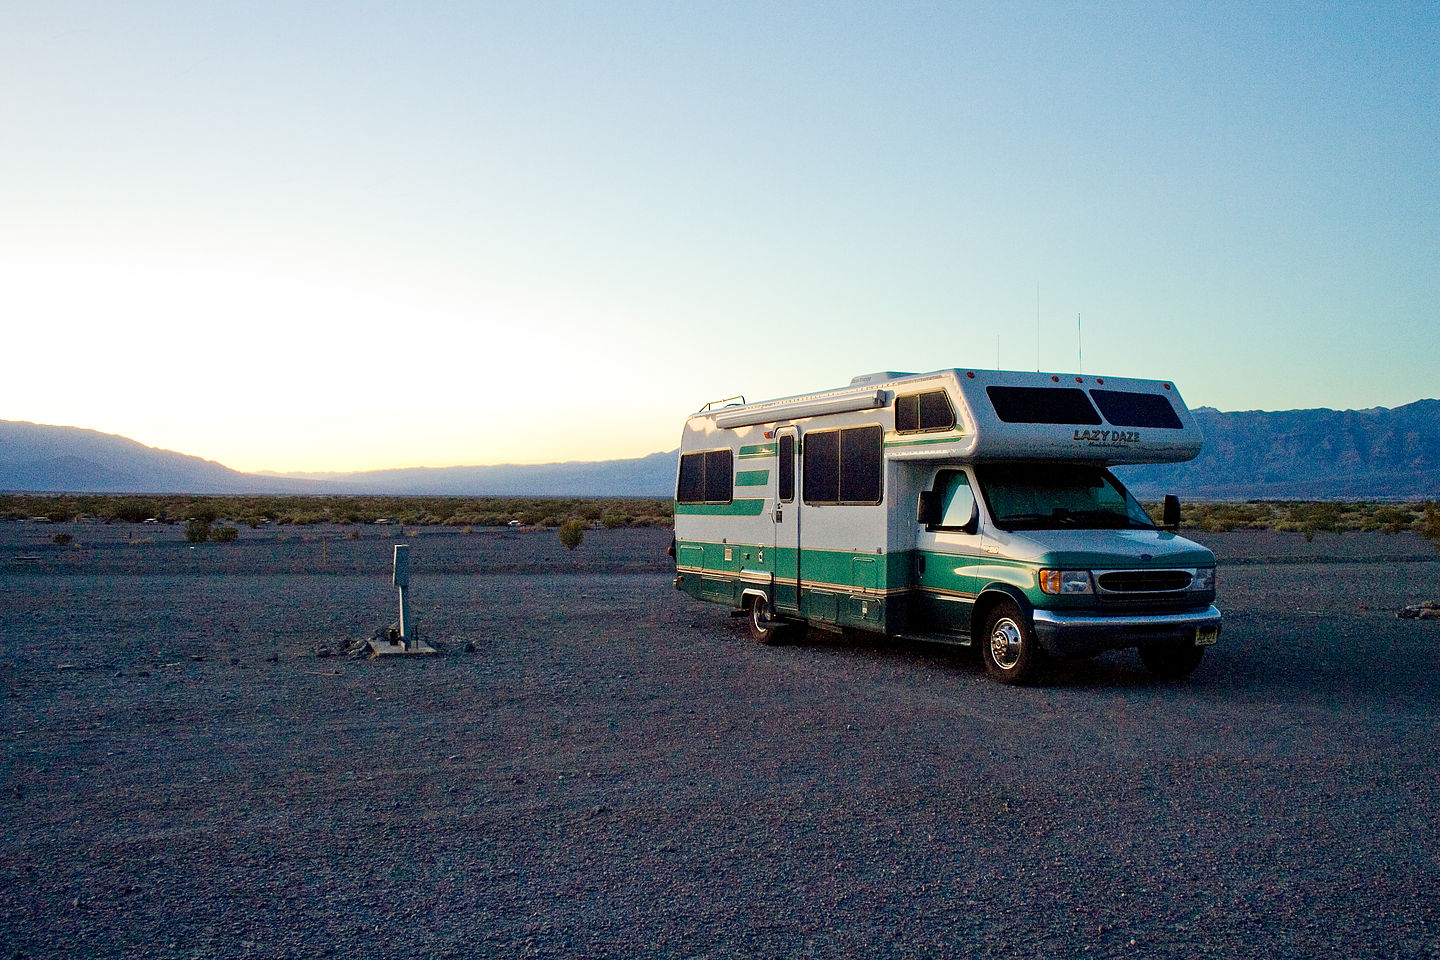 Lazy Daze at Stovepipe Wells Campground - AJG